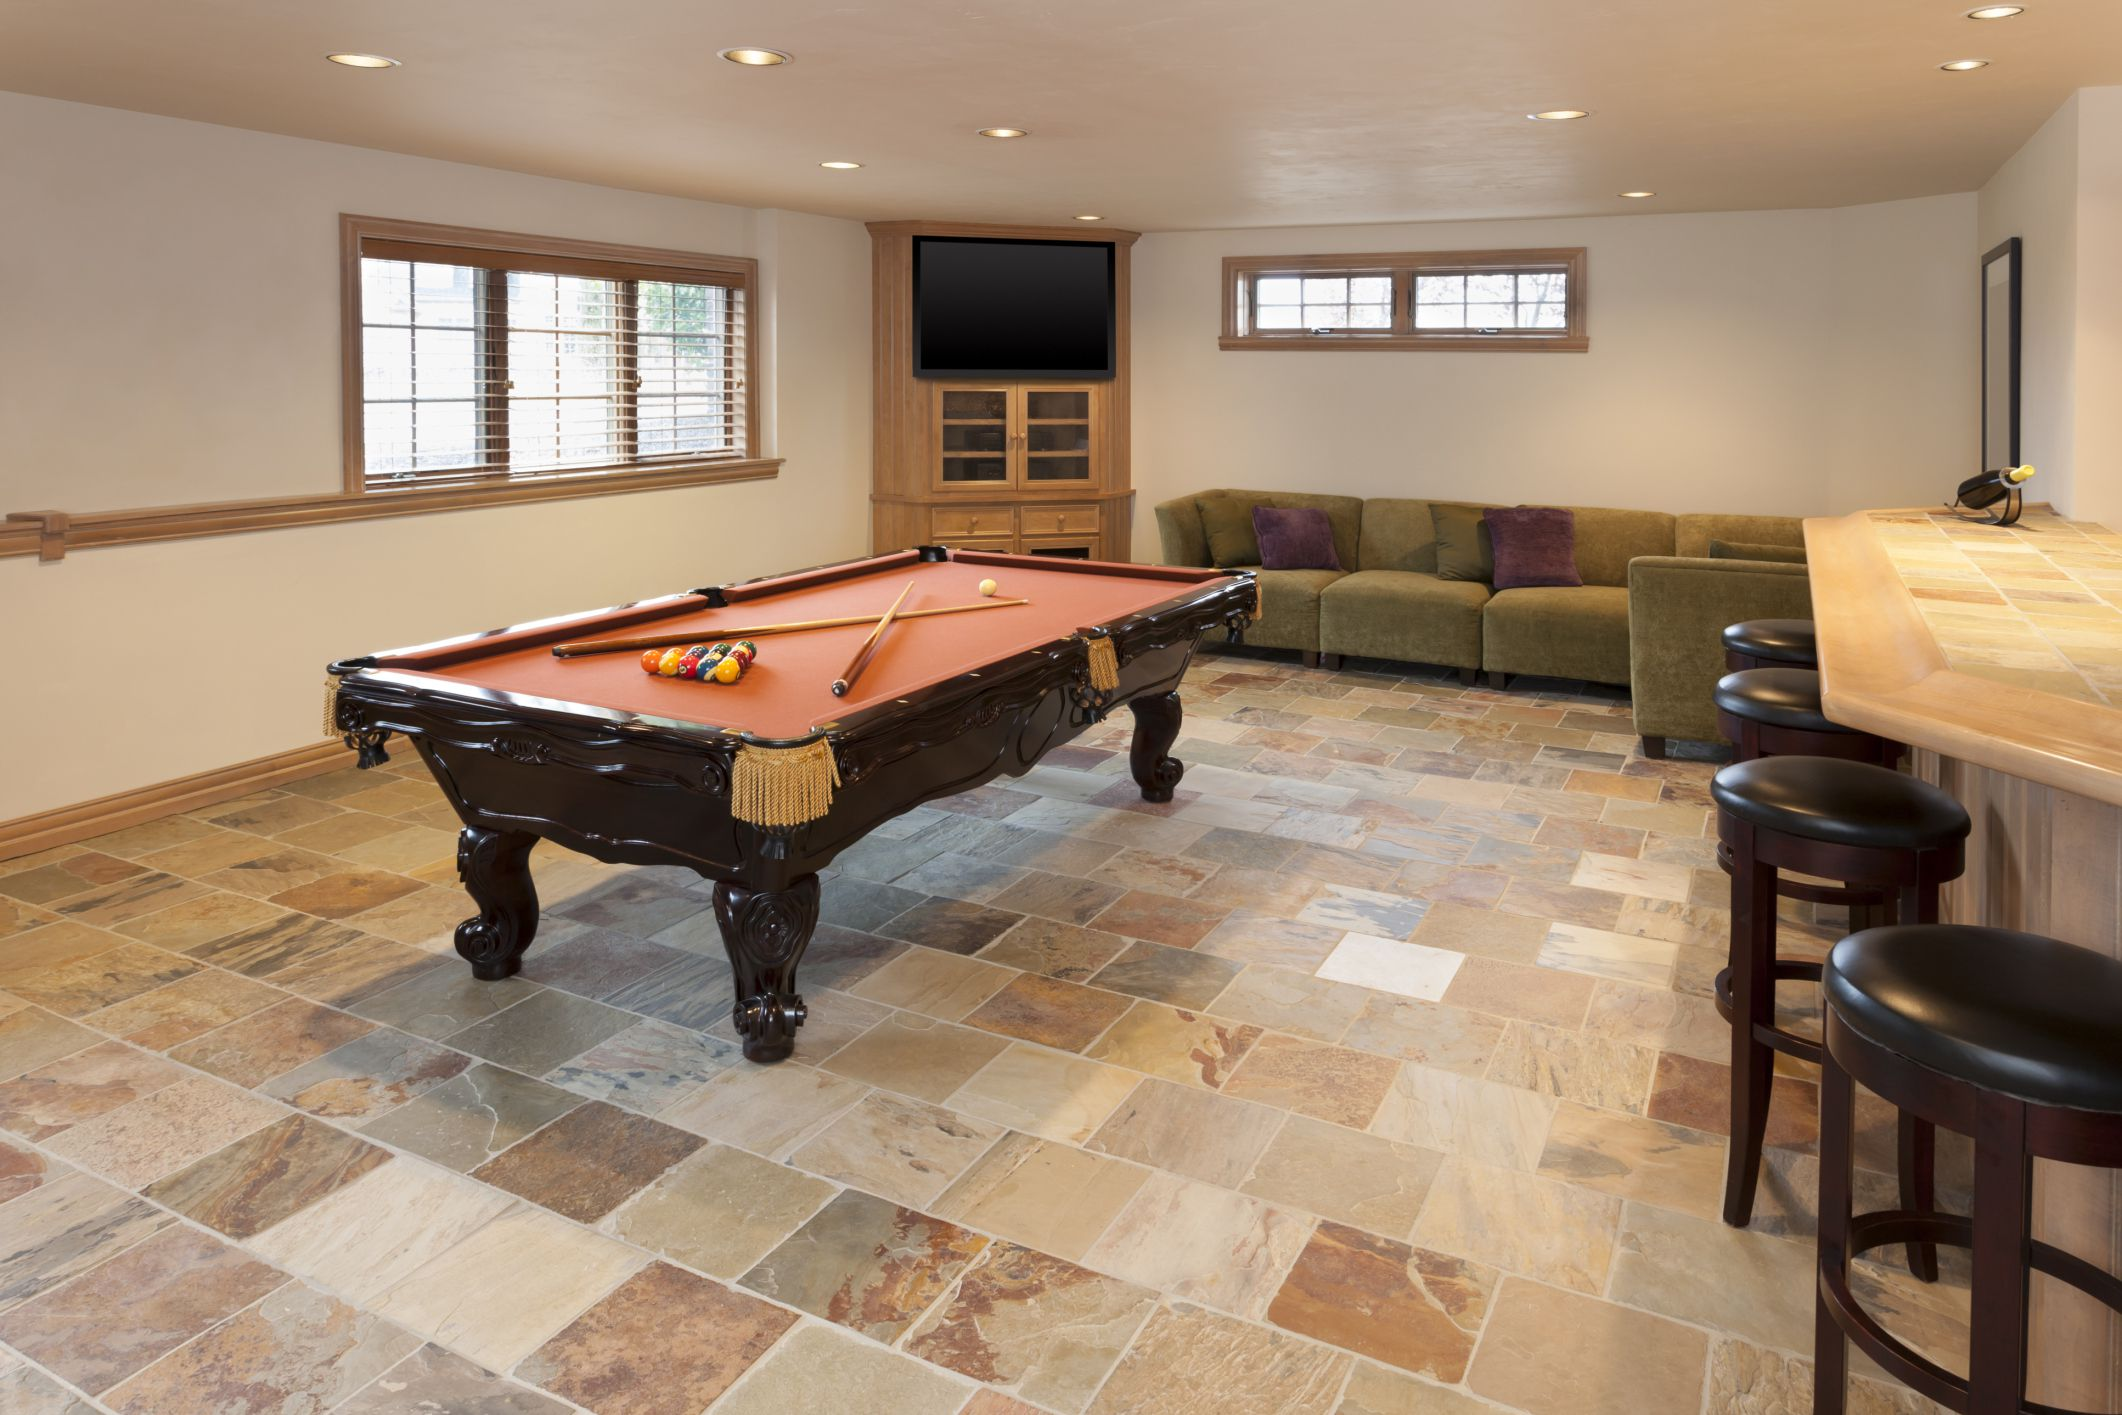 best to worst rating 13 basement flooring ideas On basement tile floor ideas